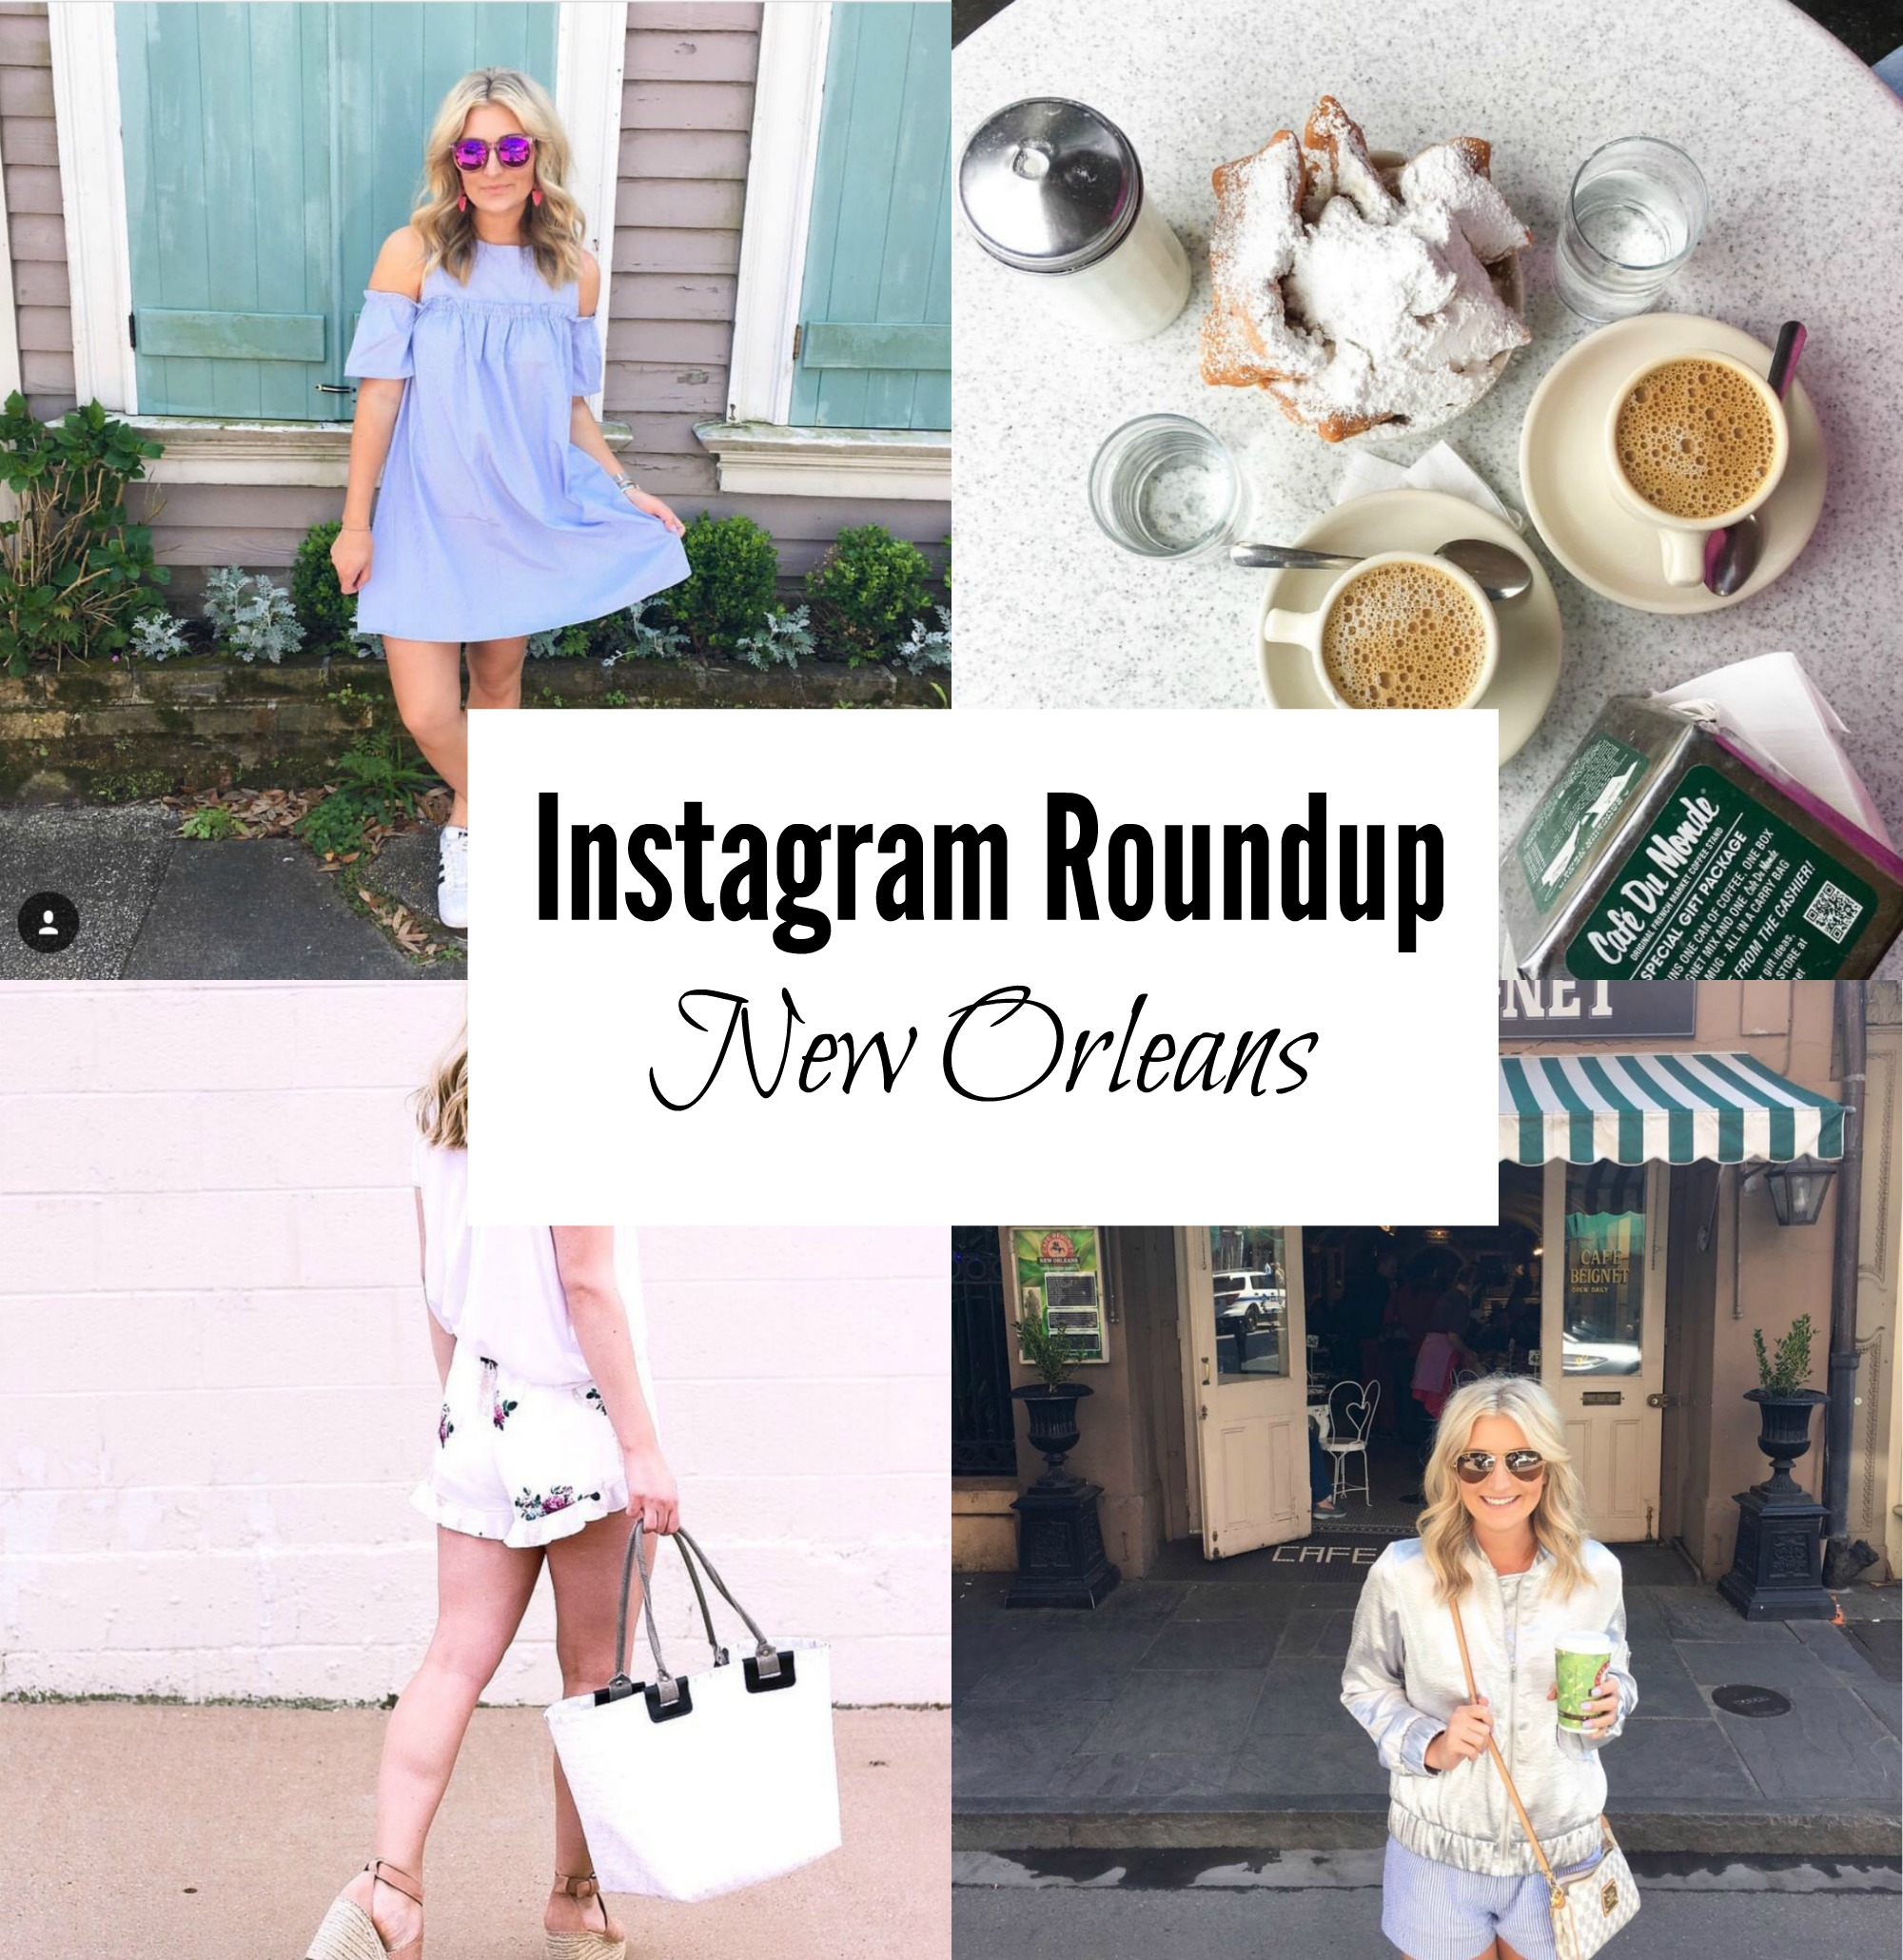 New Orleans Instagram Roundup featured by popular Texas travel blogger, Audrey Madison Stowe